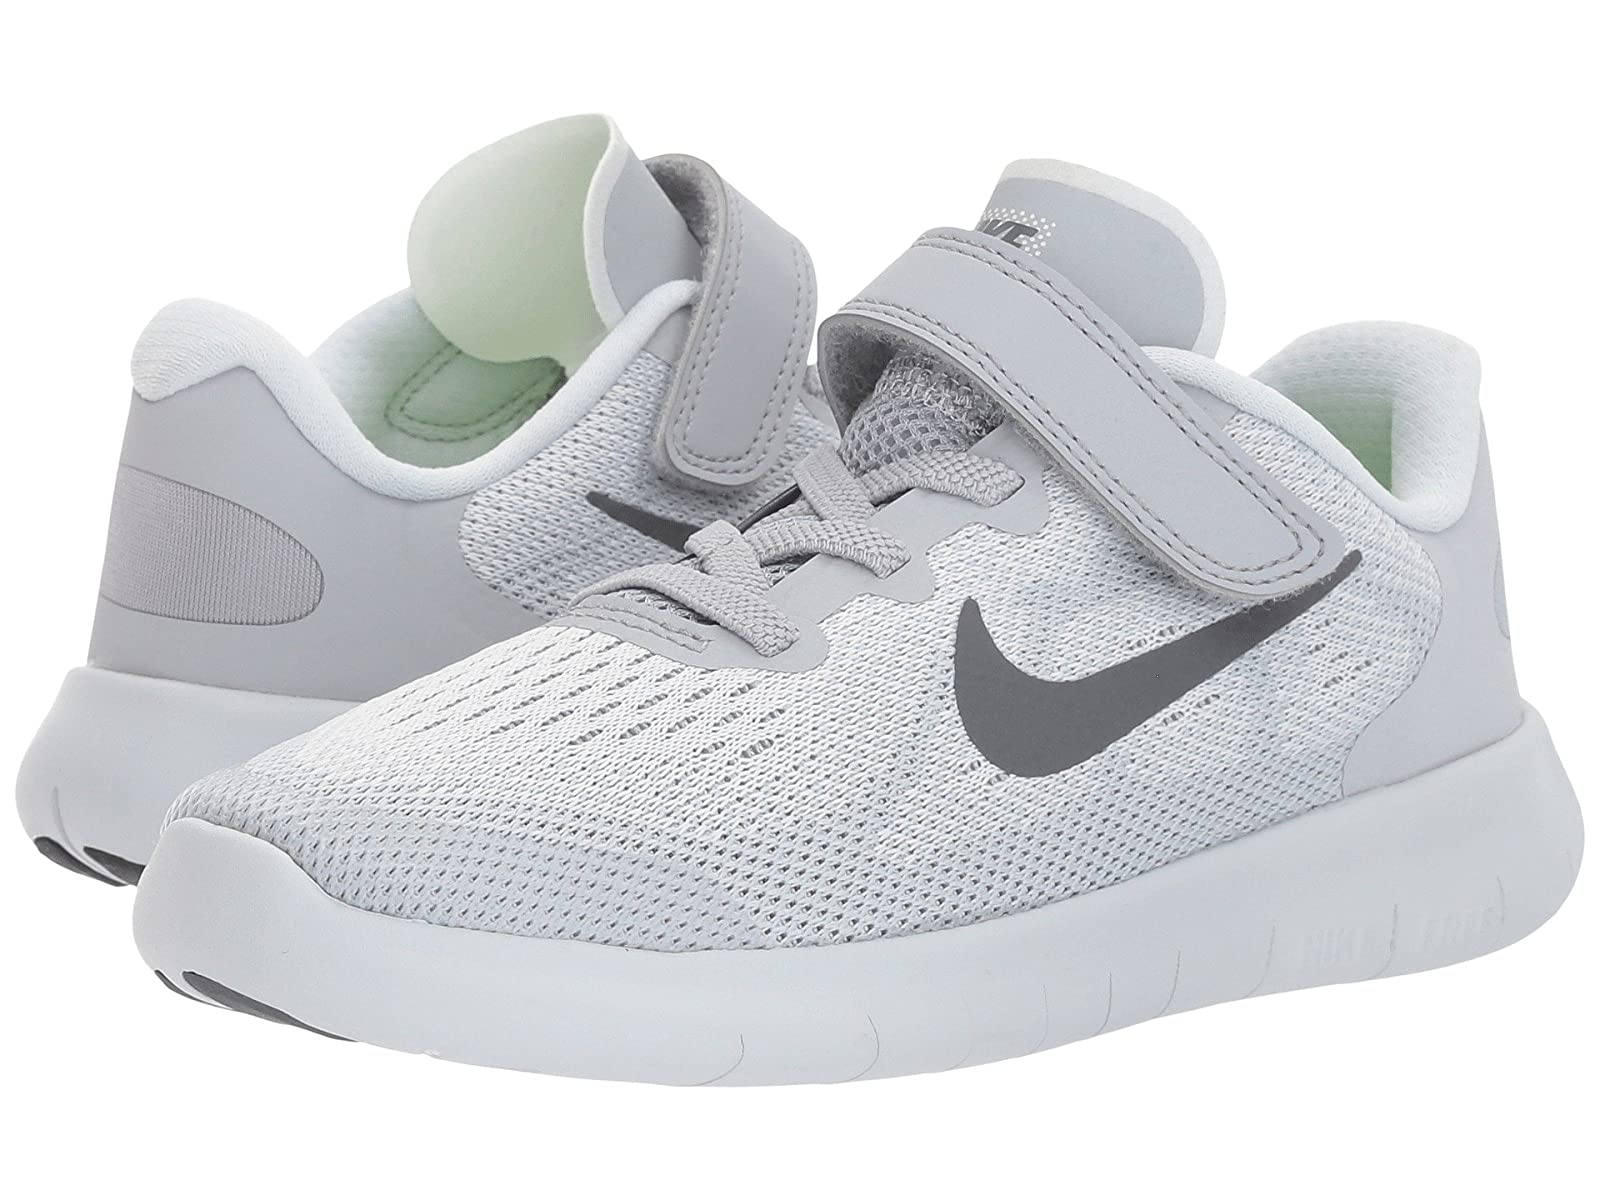 Nike Kids Free RN 2017 (Little Kid)Cheap and distinctive eye-catching shoes